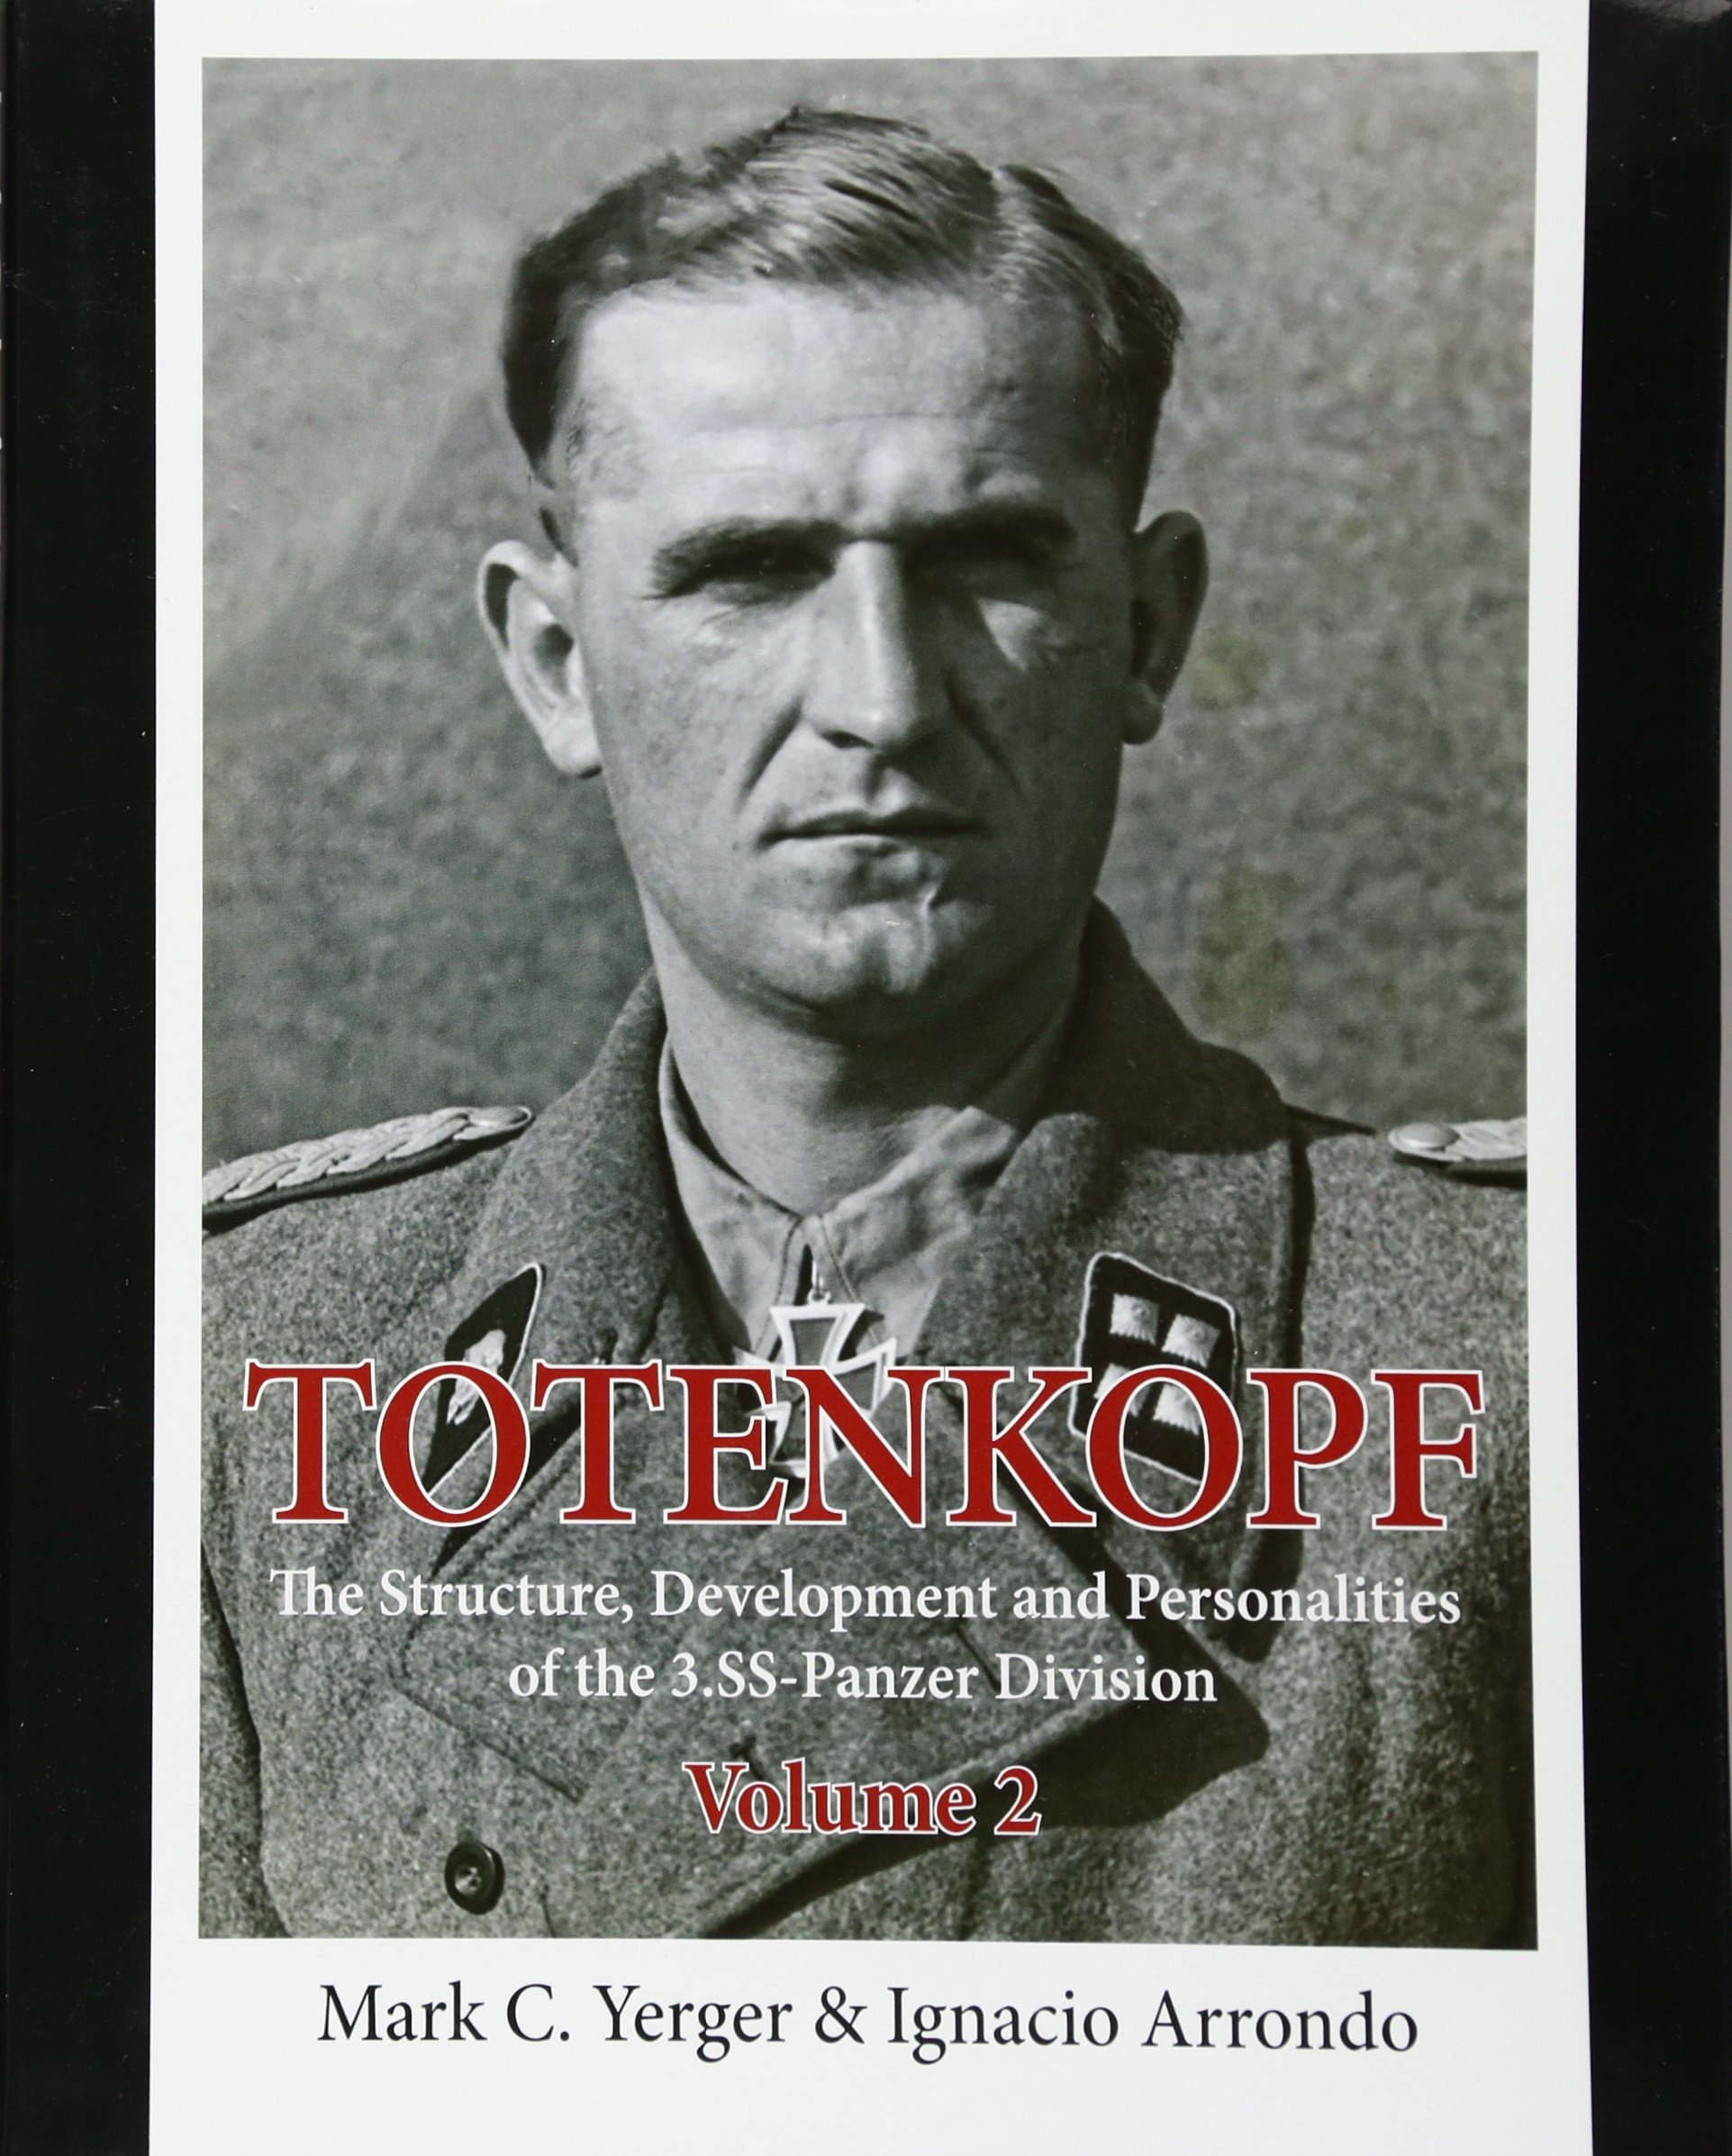 Totenkopf. Volume 2: The Structure, Development and Personalities of the 3.SS-Panzer-Division